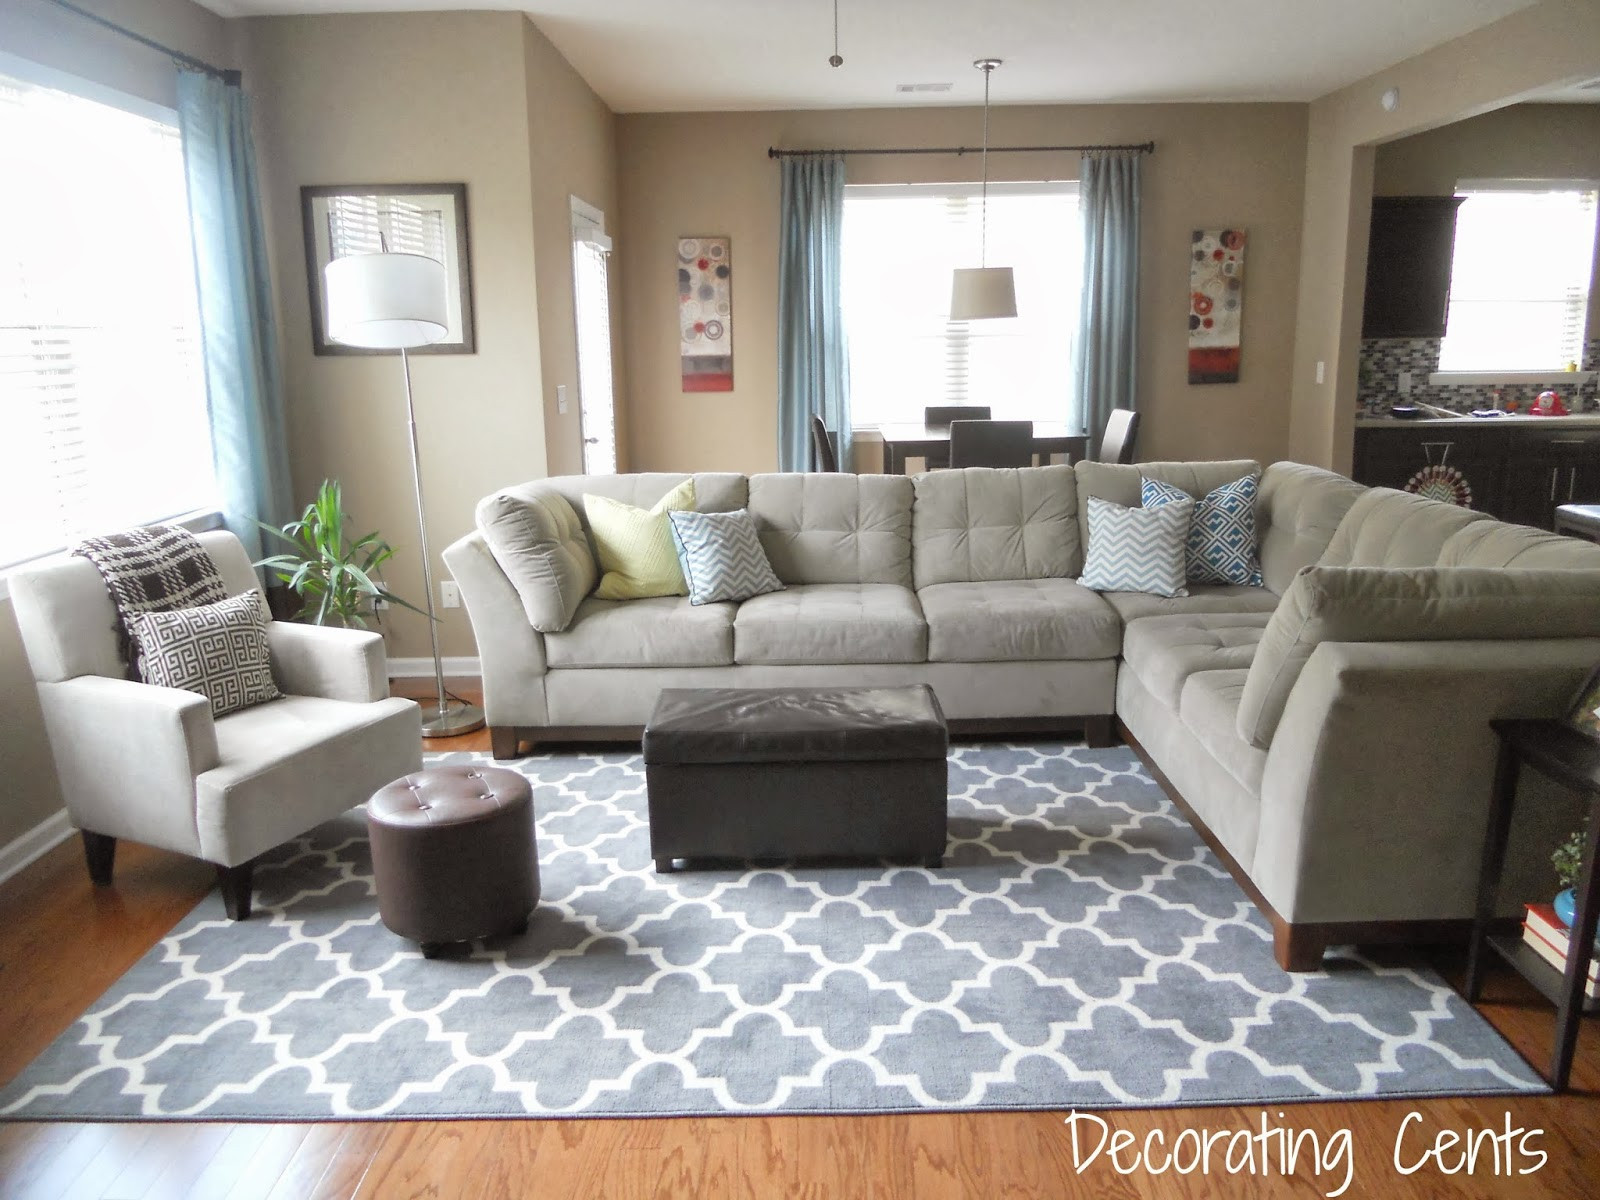 Best ideas about Family Room Area Rugs . Save or Pin Decorating Cents New Family Room Rug Now.